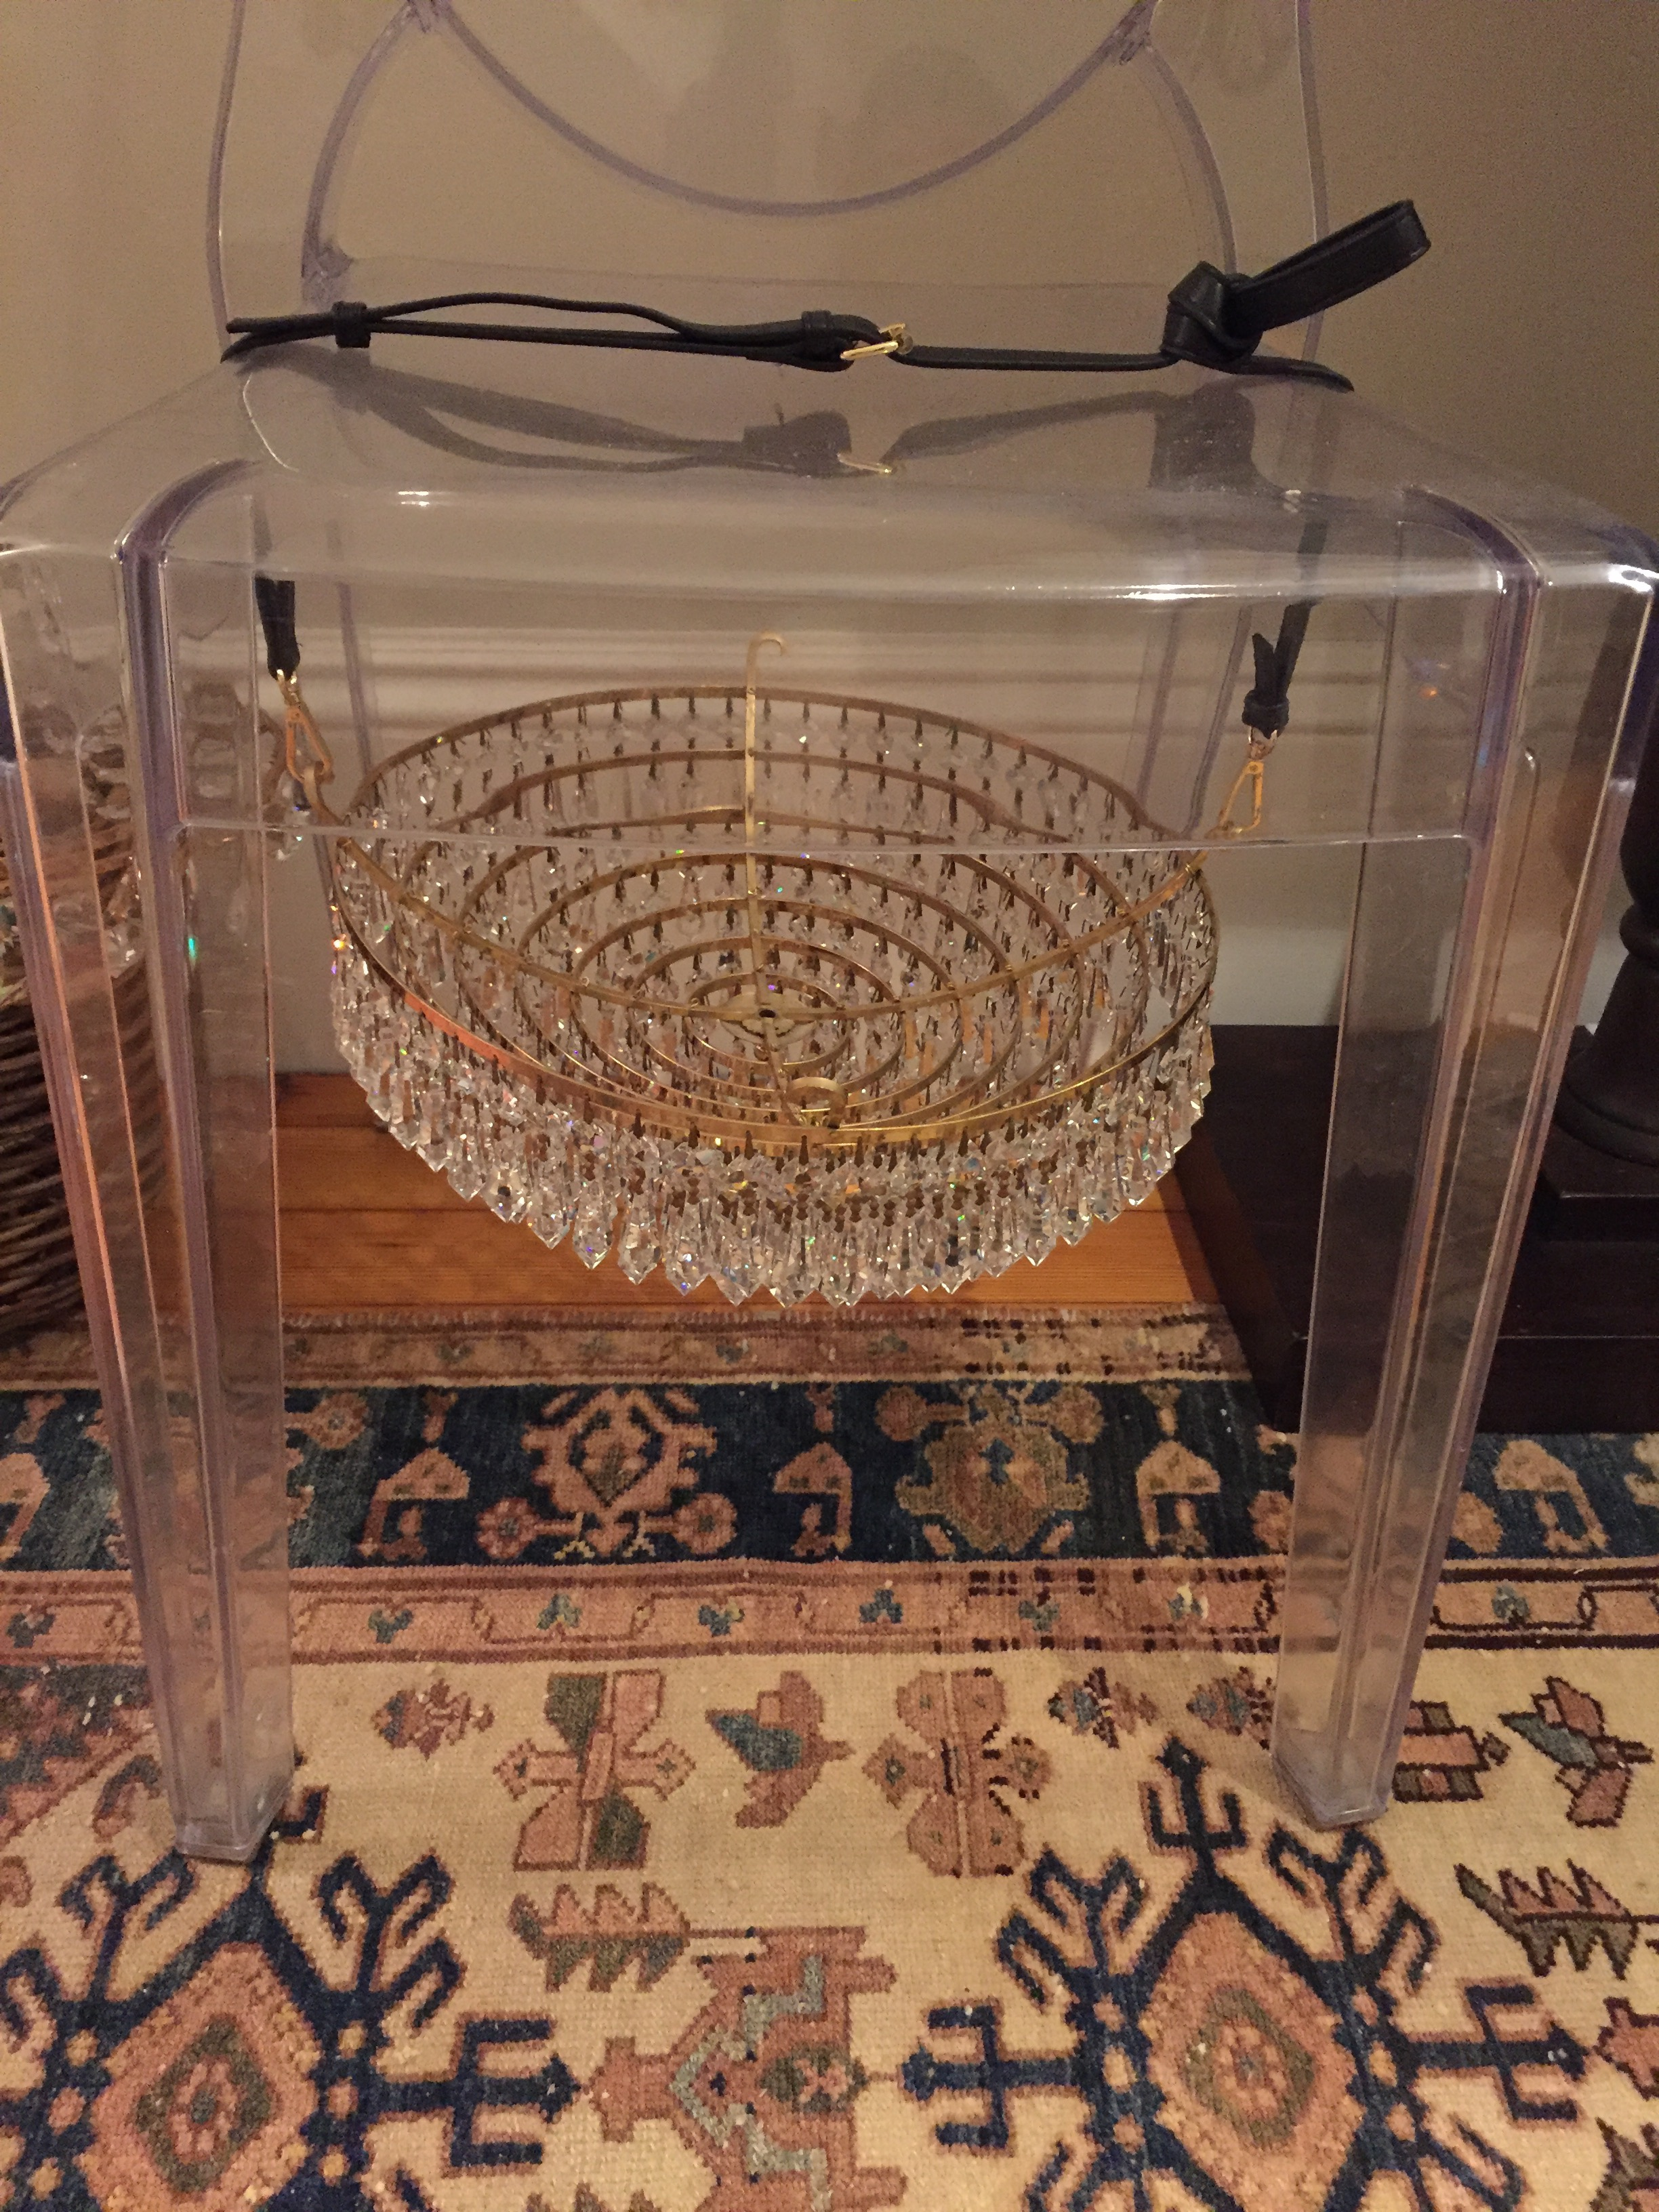 The basket of the chandelier after cleaning. You can see my jury-rigged chair setup here as well.